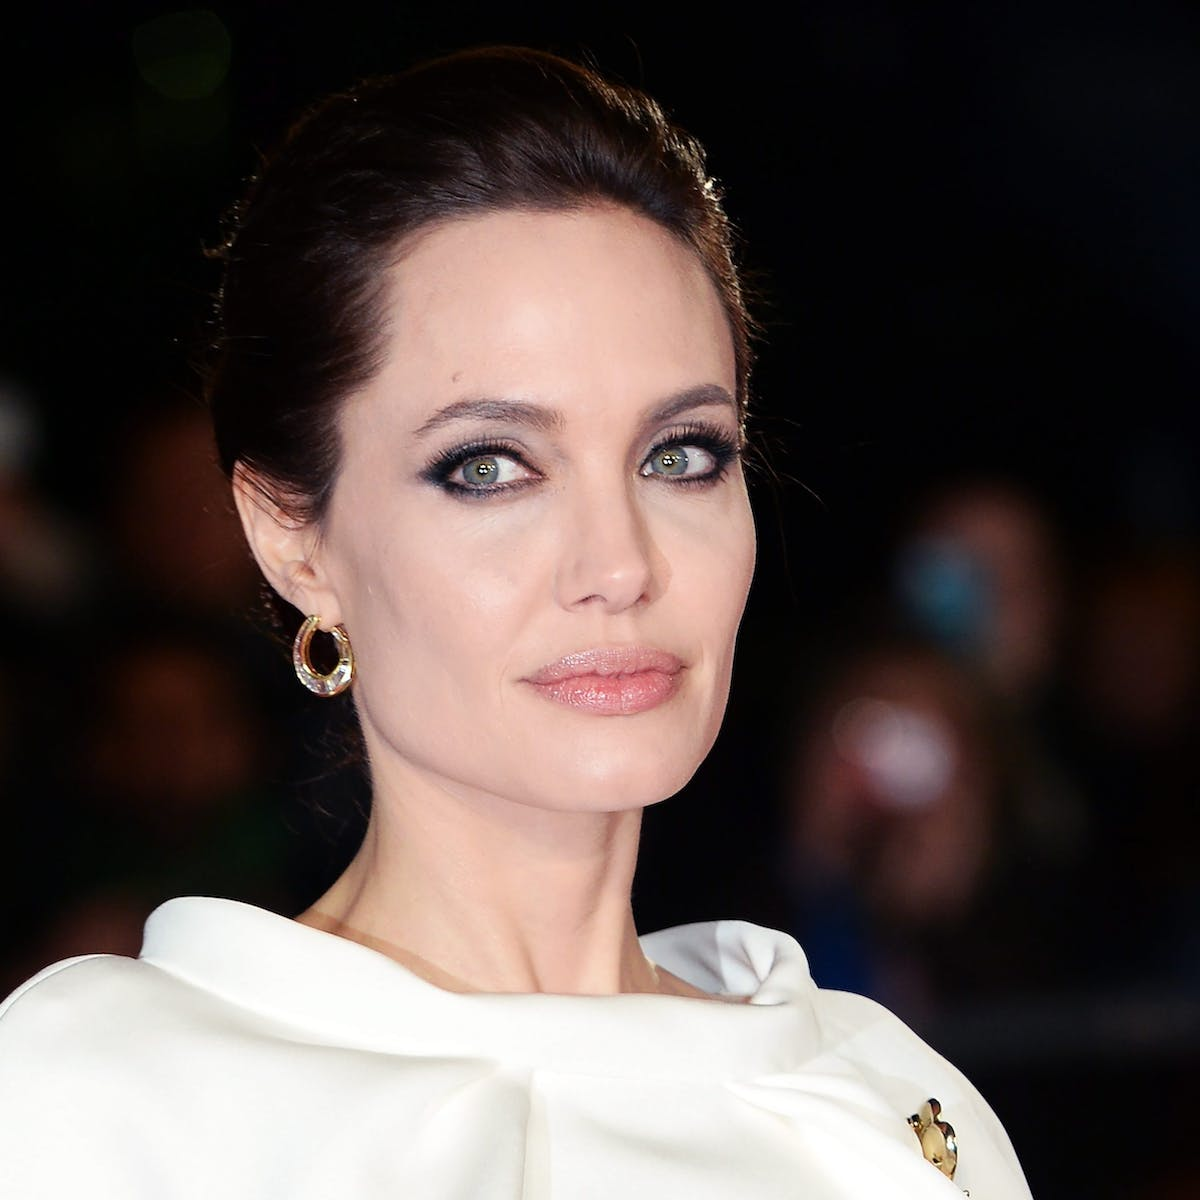 Angelina Jolie S Surgery Got You Worried Here S What You Should Know About Ovarian Cancer Risk